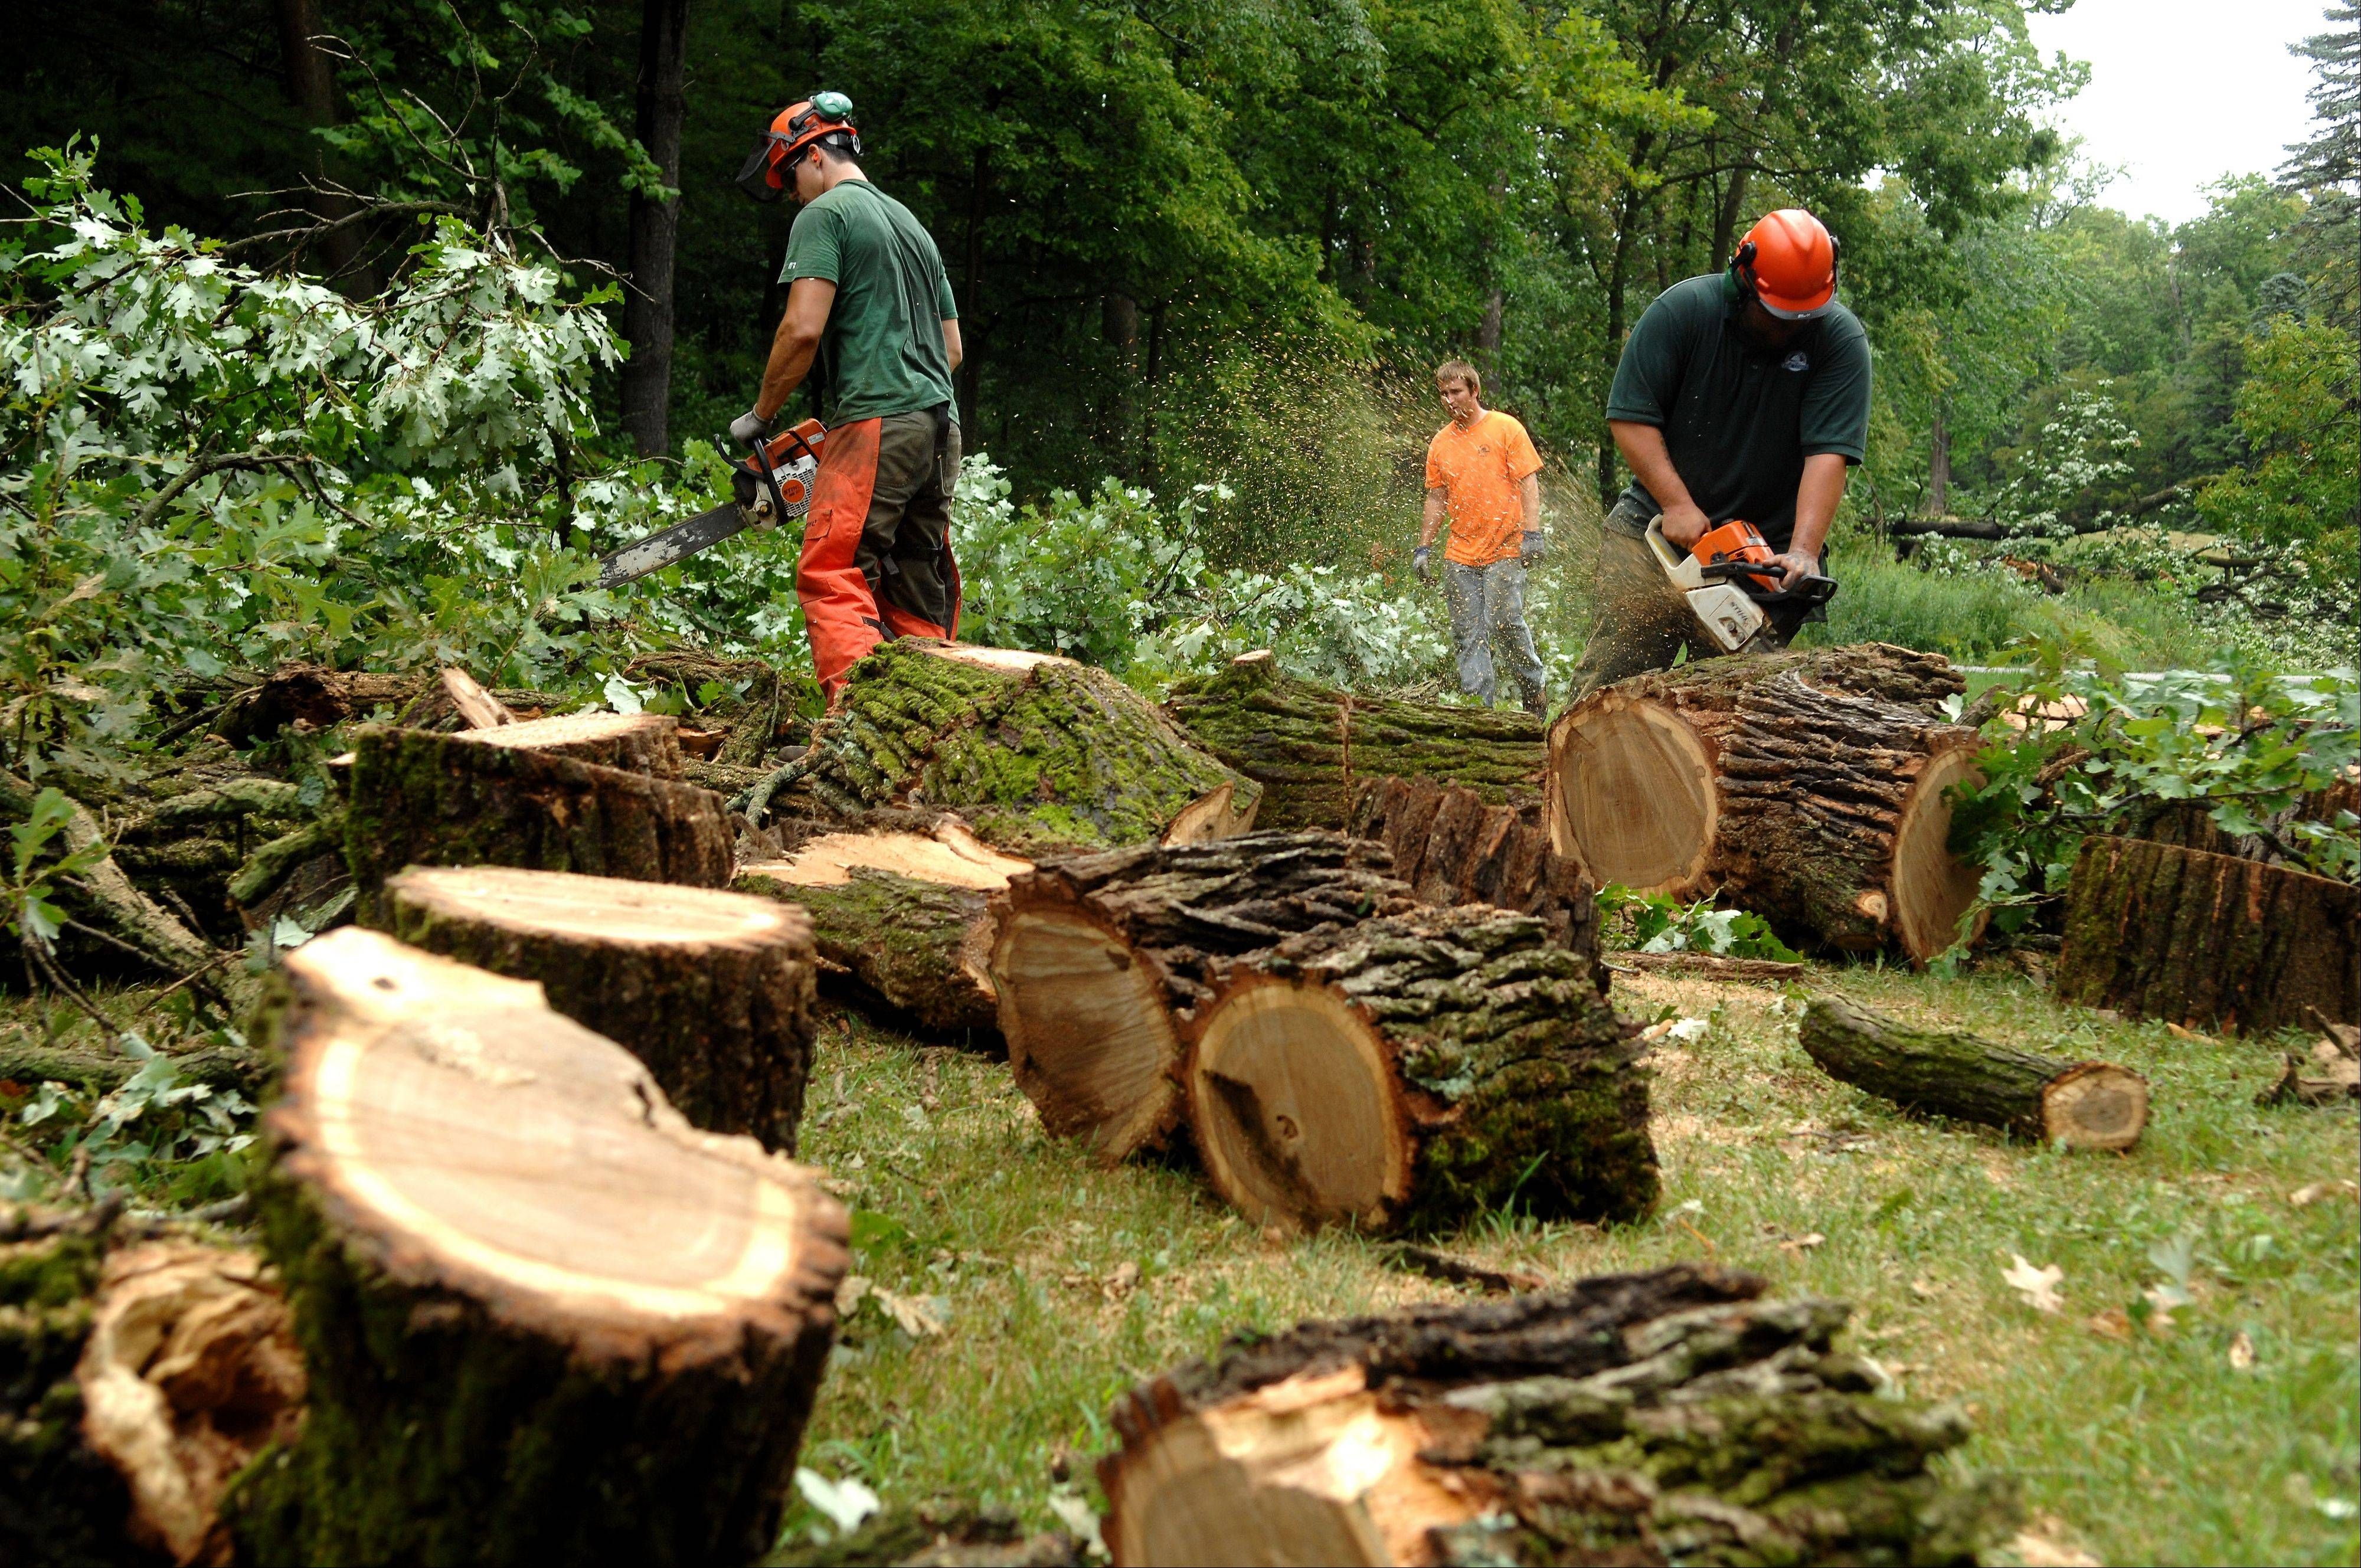 Kane County Forest Preserve District employees Paul Sanchez, left, Matthew Ikemire and Kyle Sparks work on cleanup of several downed trees at Fabyan Forest Preserve in Geneva after strong storms swept through the area early Tuesday morning.